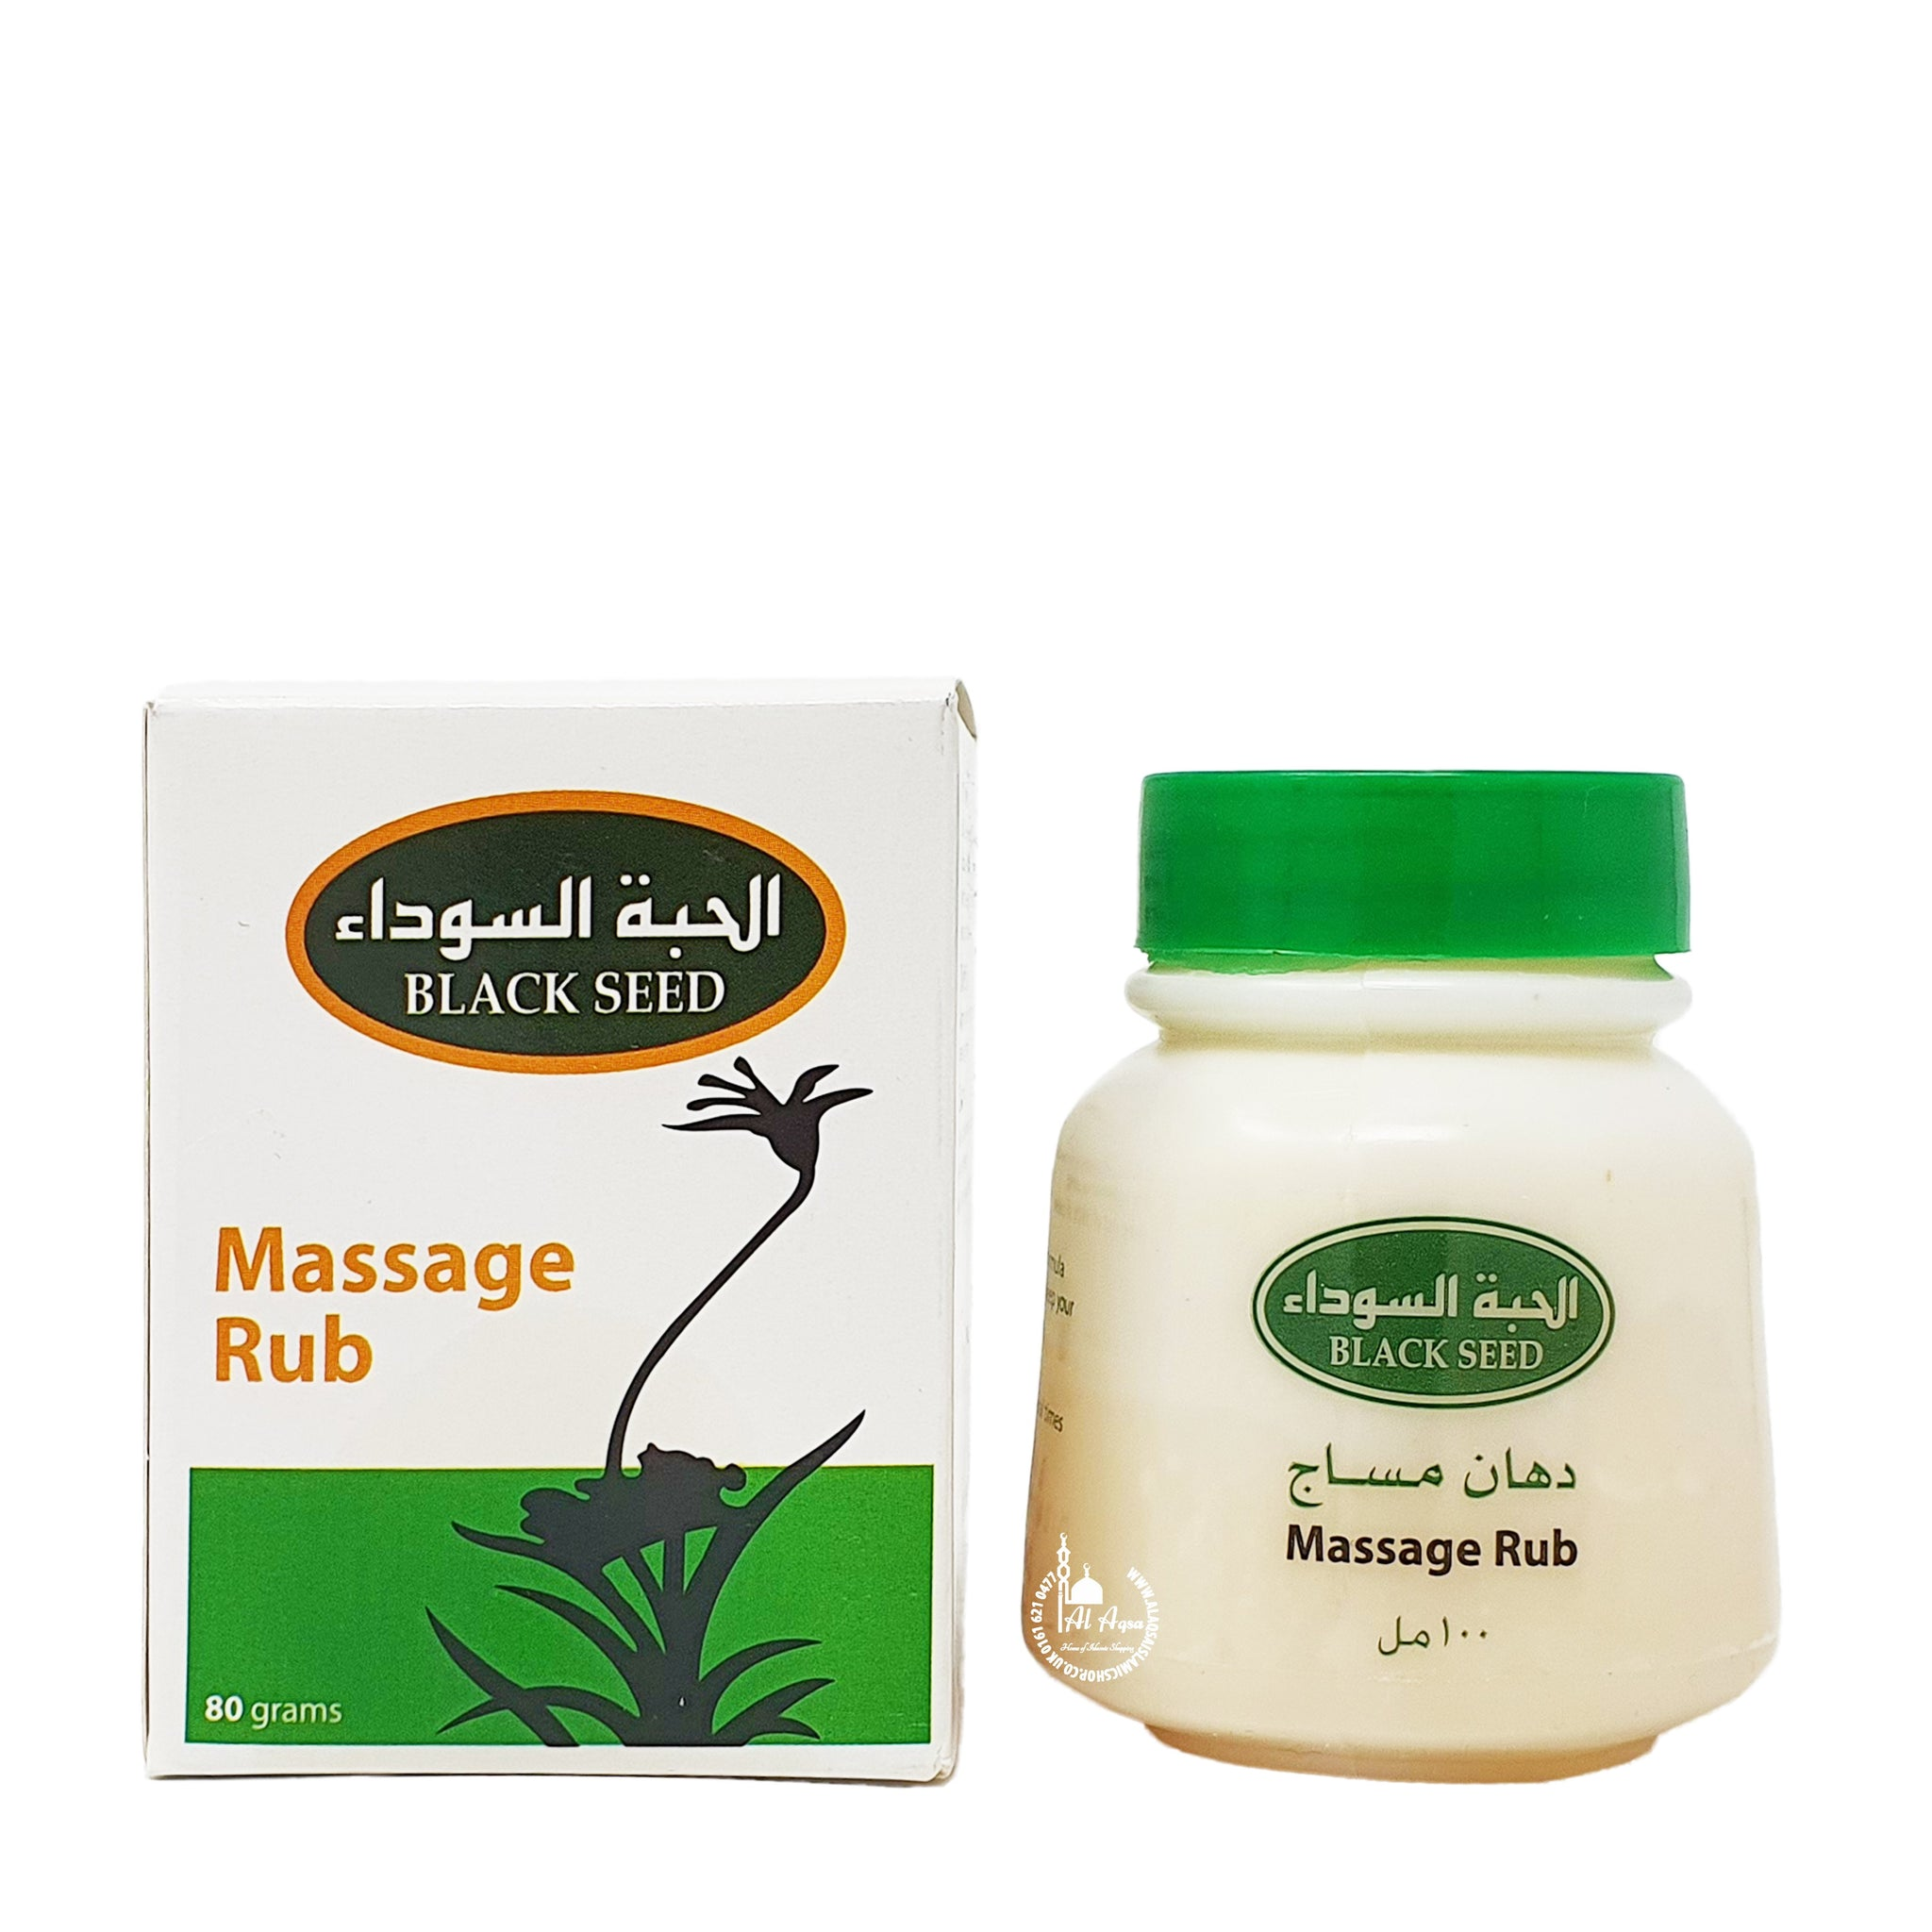 Black Seed Massage Rub